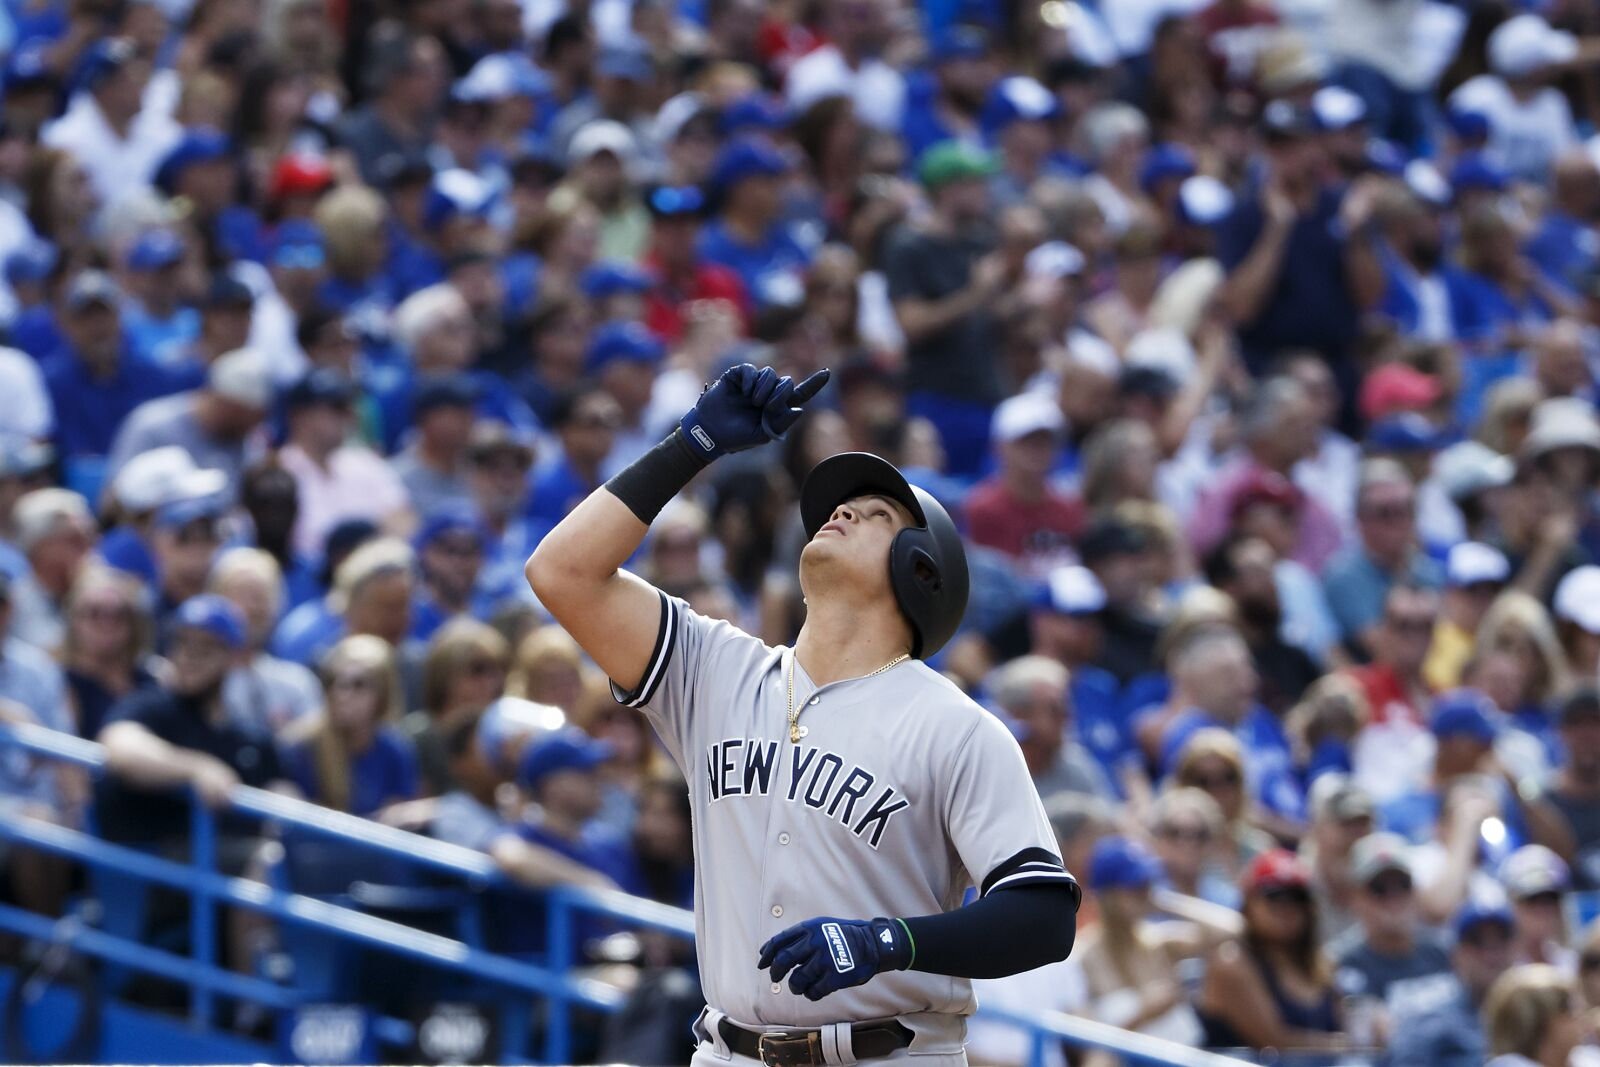 Gio Urshela is creating a future offseason issue for the New York Yankees